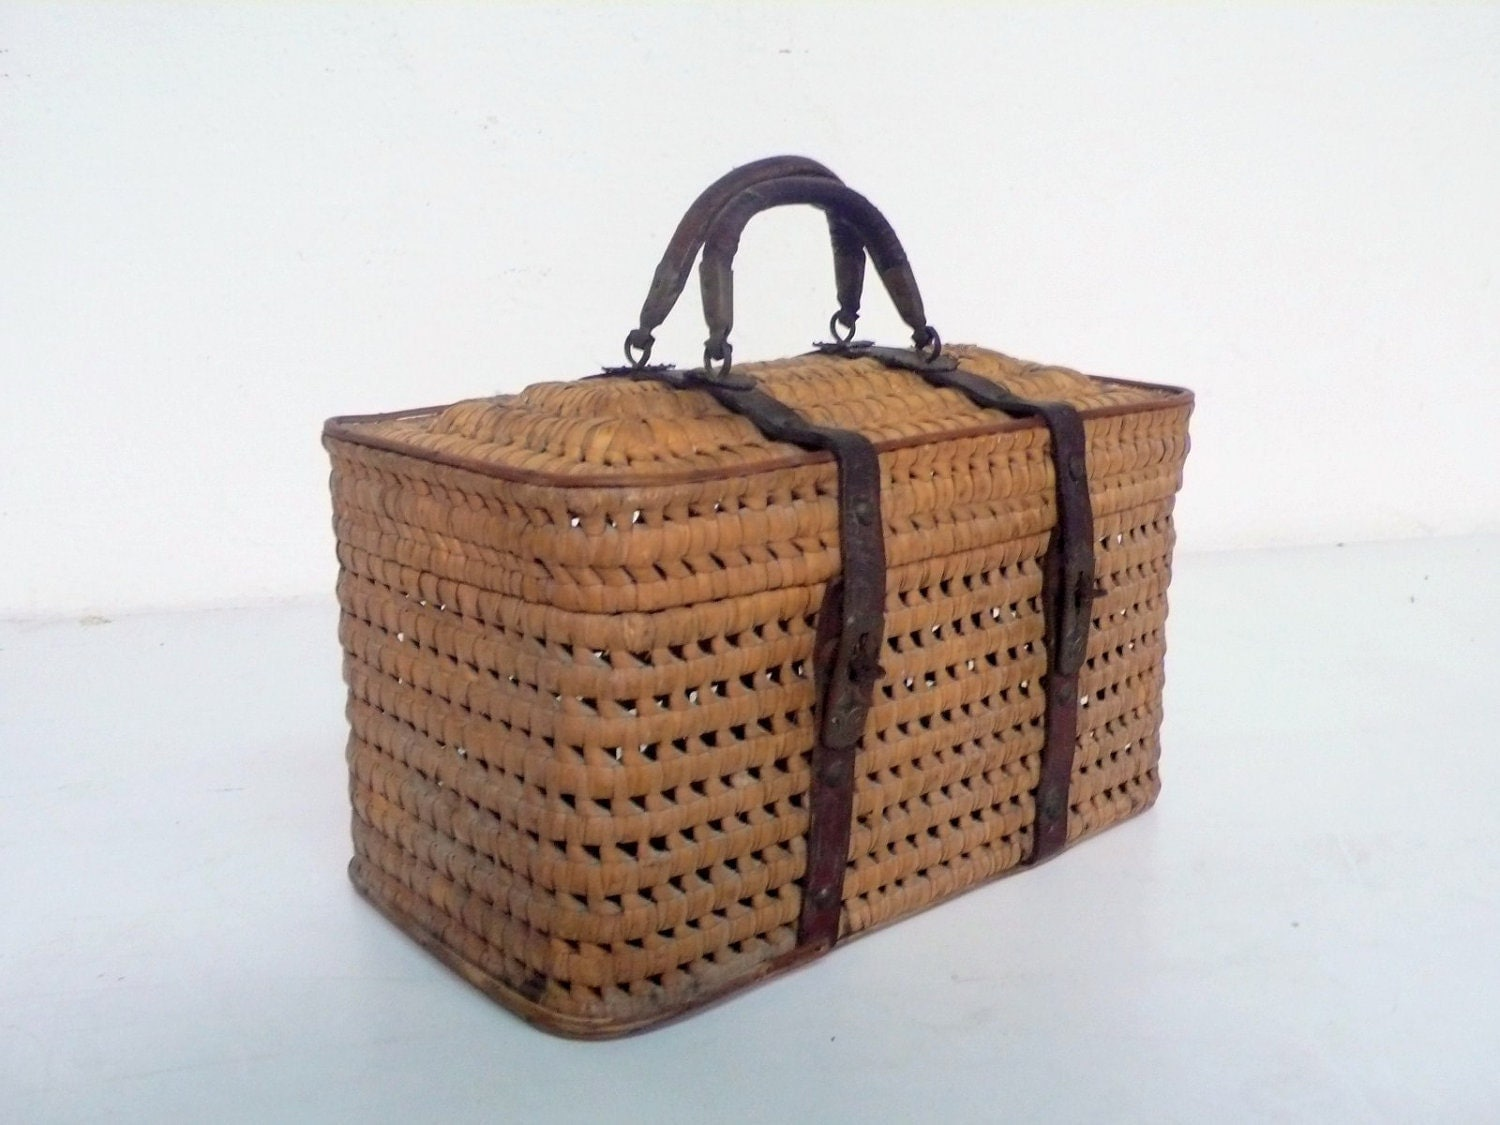 Antique art nouveau picnic basket - DACAIS